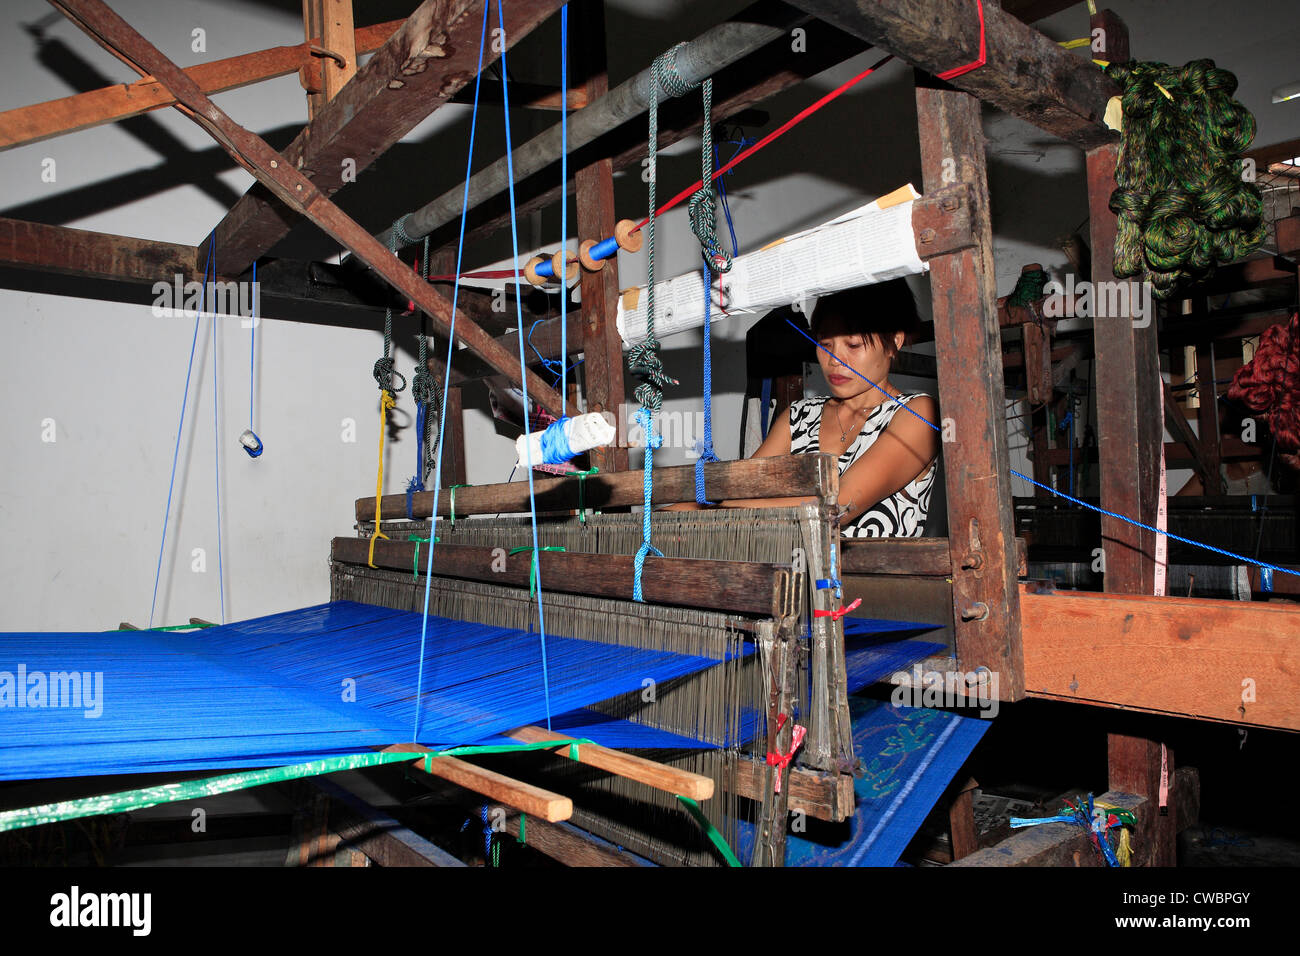 a-process-of-ikat-fabric-weaving-weaving-on-a-footloom-CWBPGY.jpg